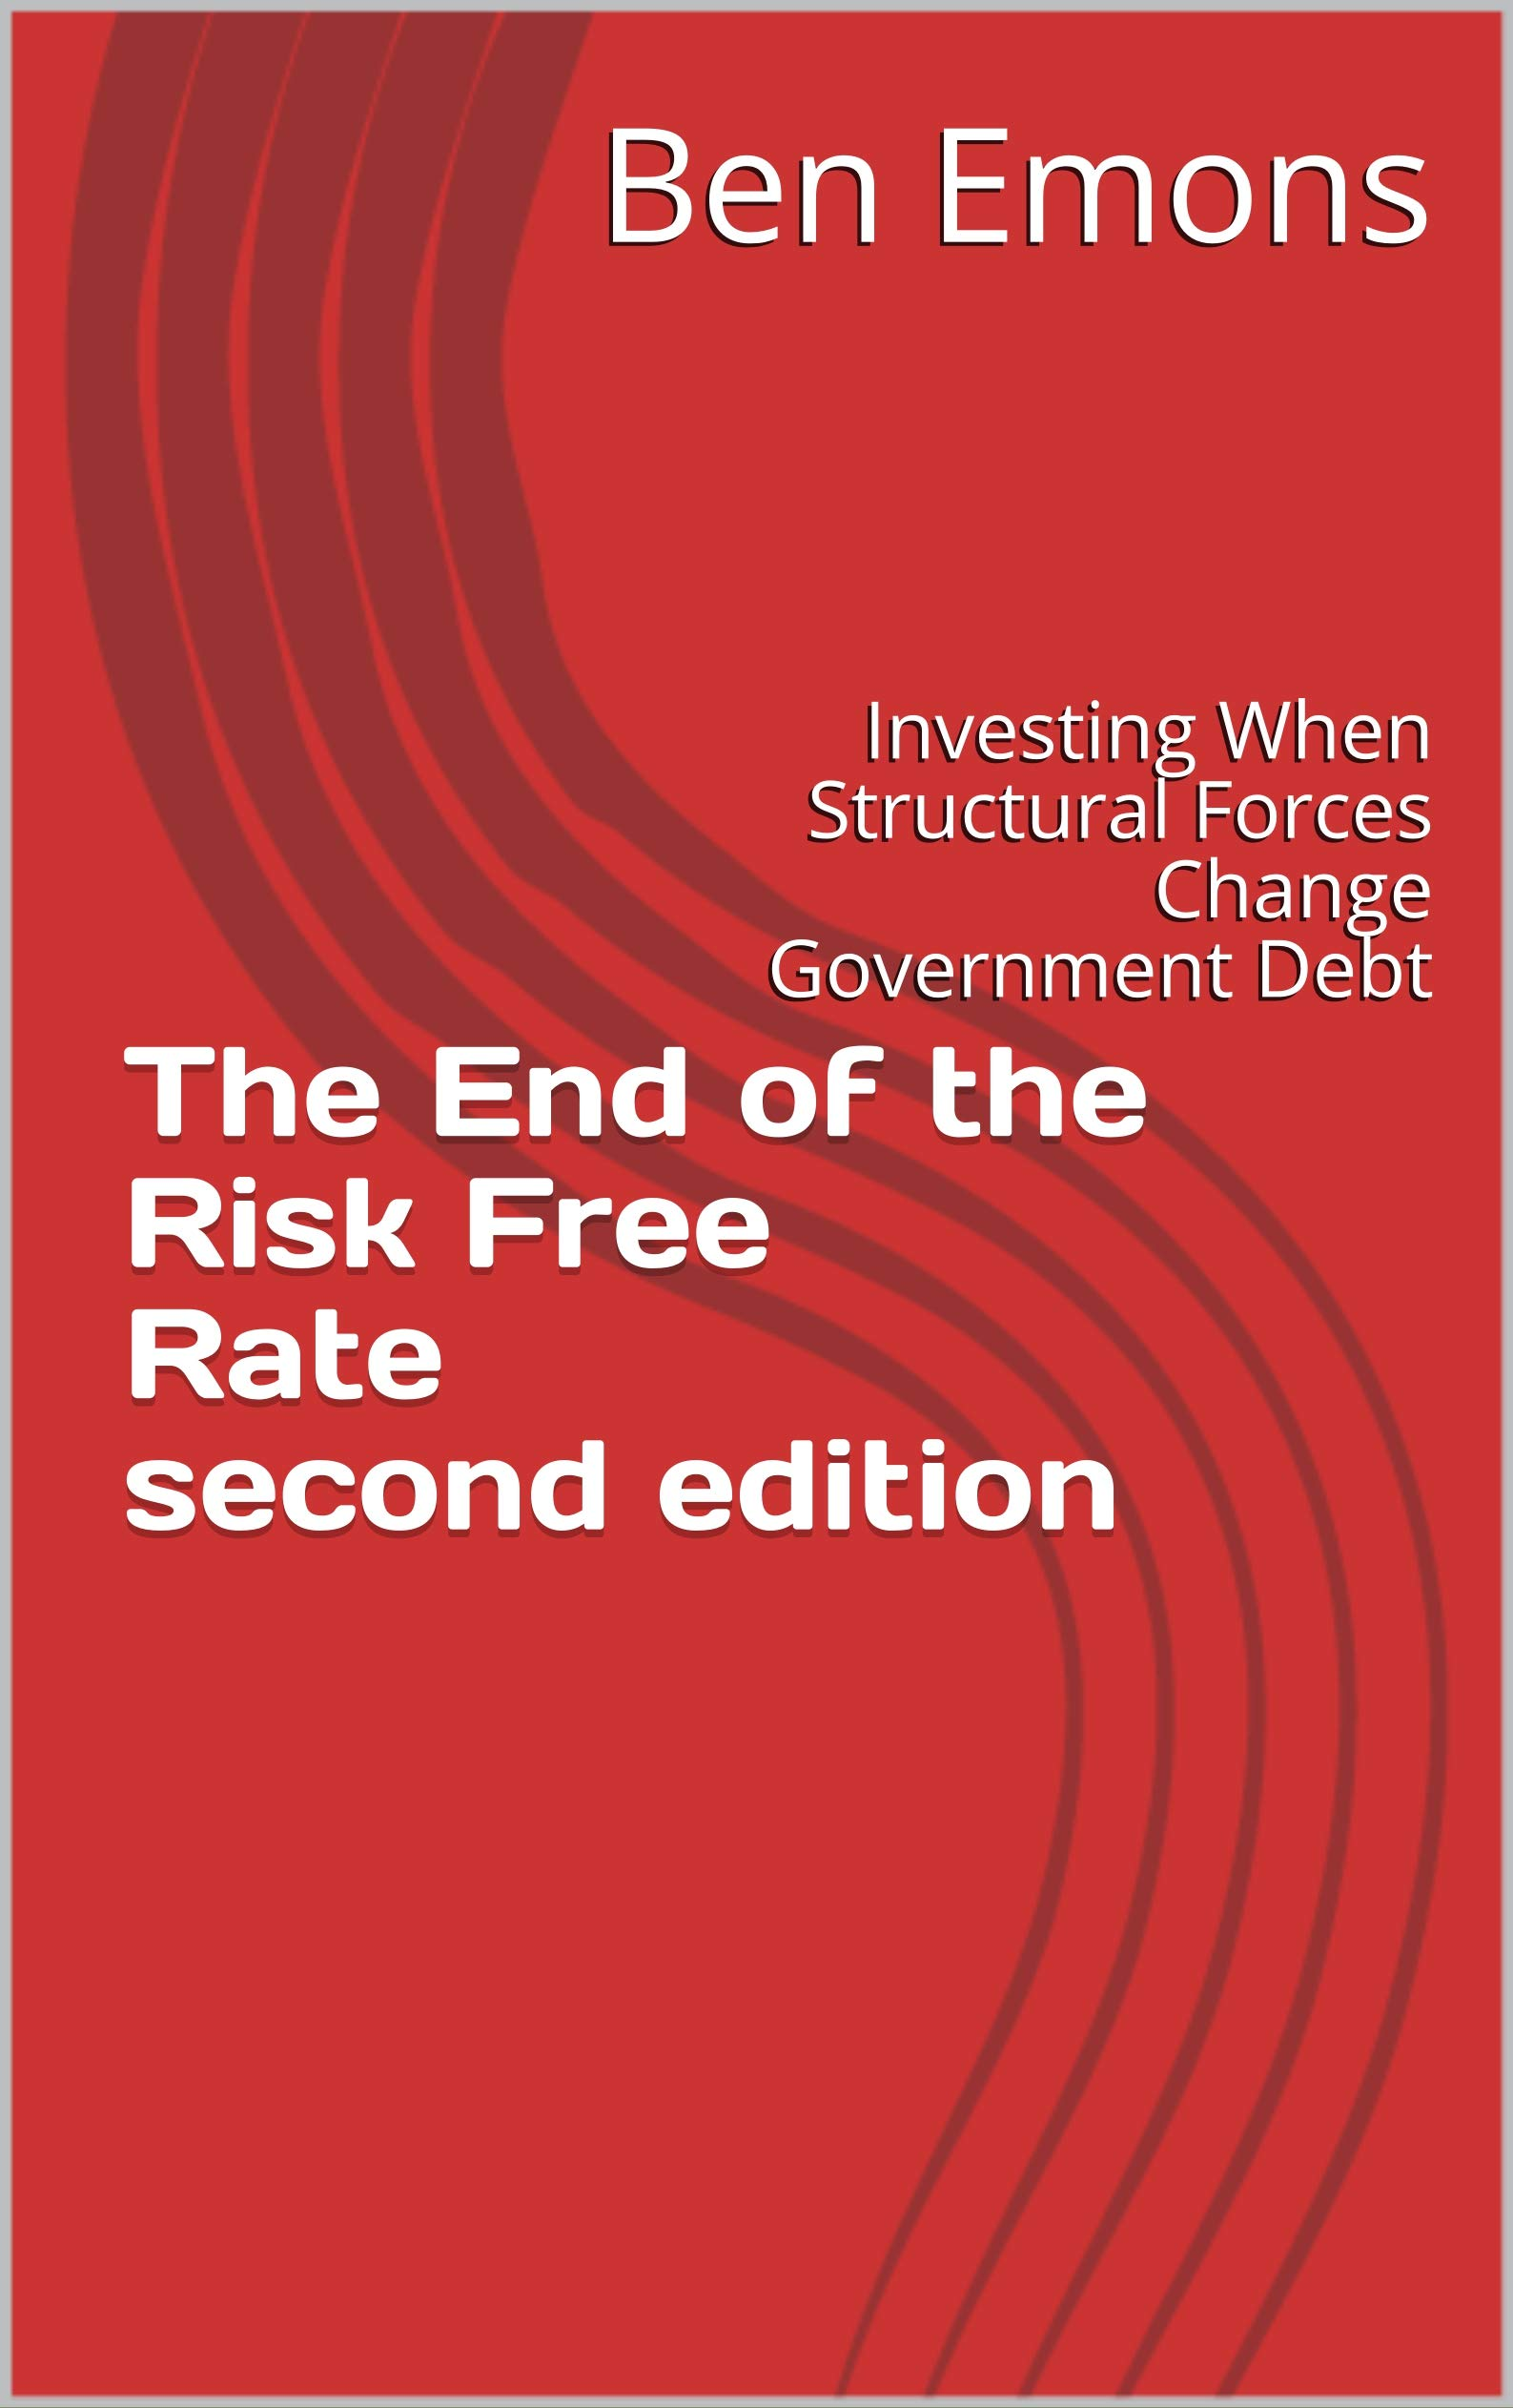 The End of the Risk Free Rate second edition: Investing When Structural Forces Change Government Debt